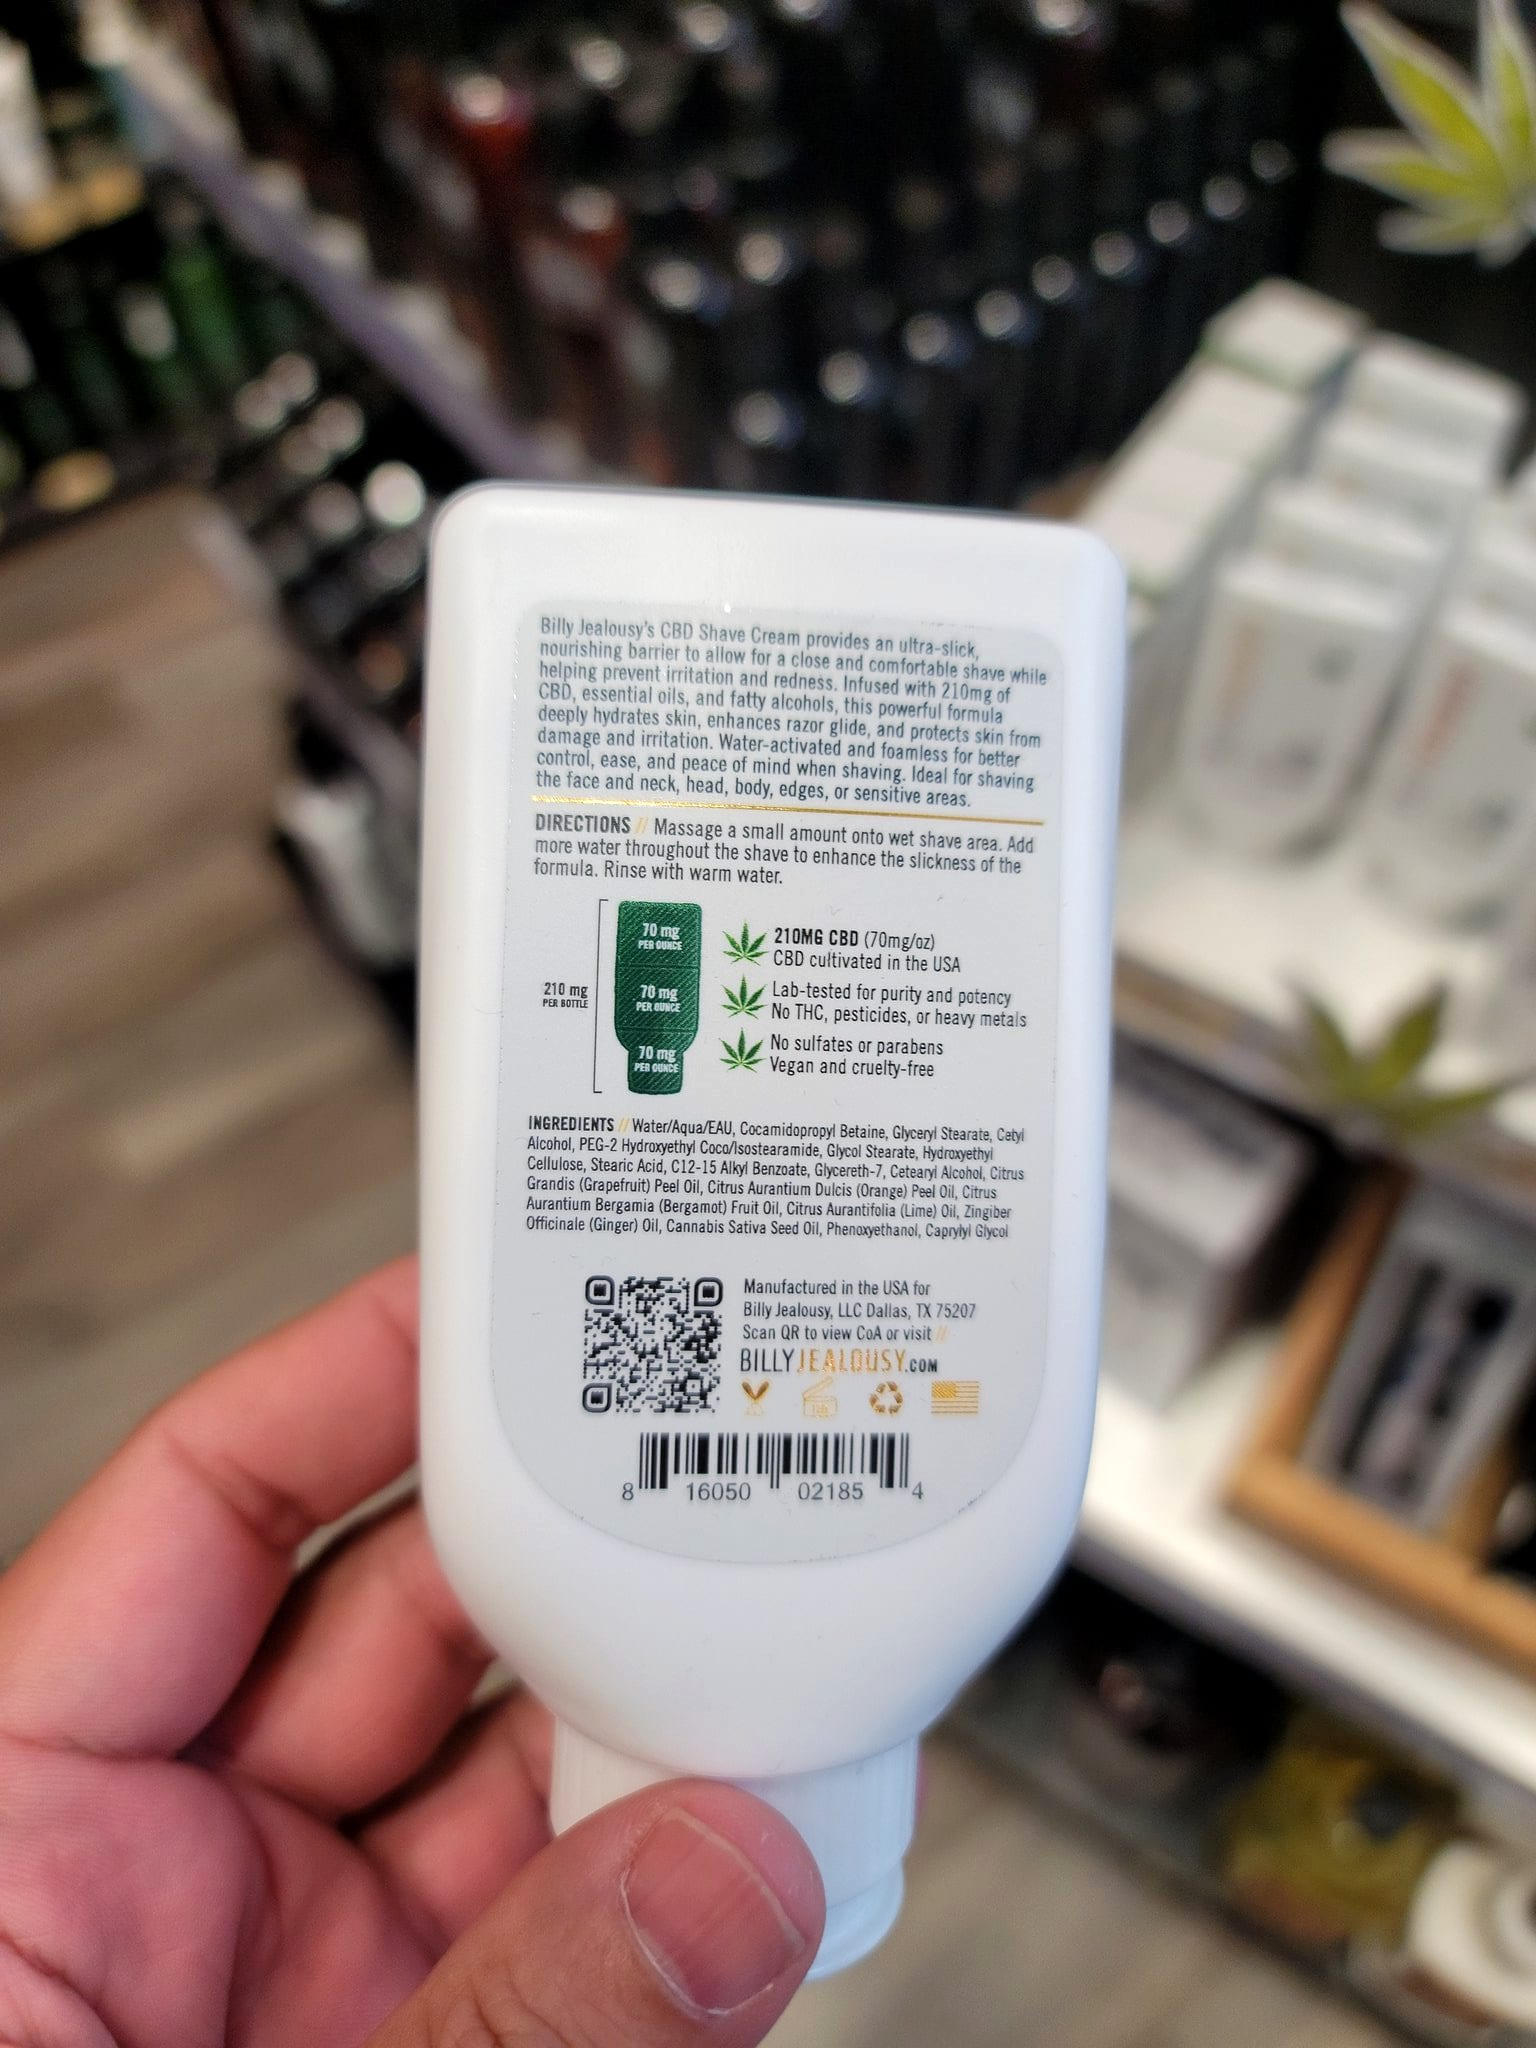 Illict CBD shampoo in plain view — what's it to you? Tommy Gunsbottle